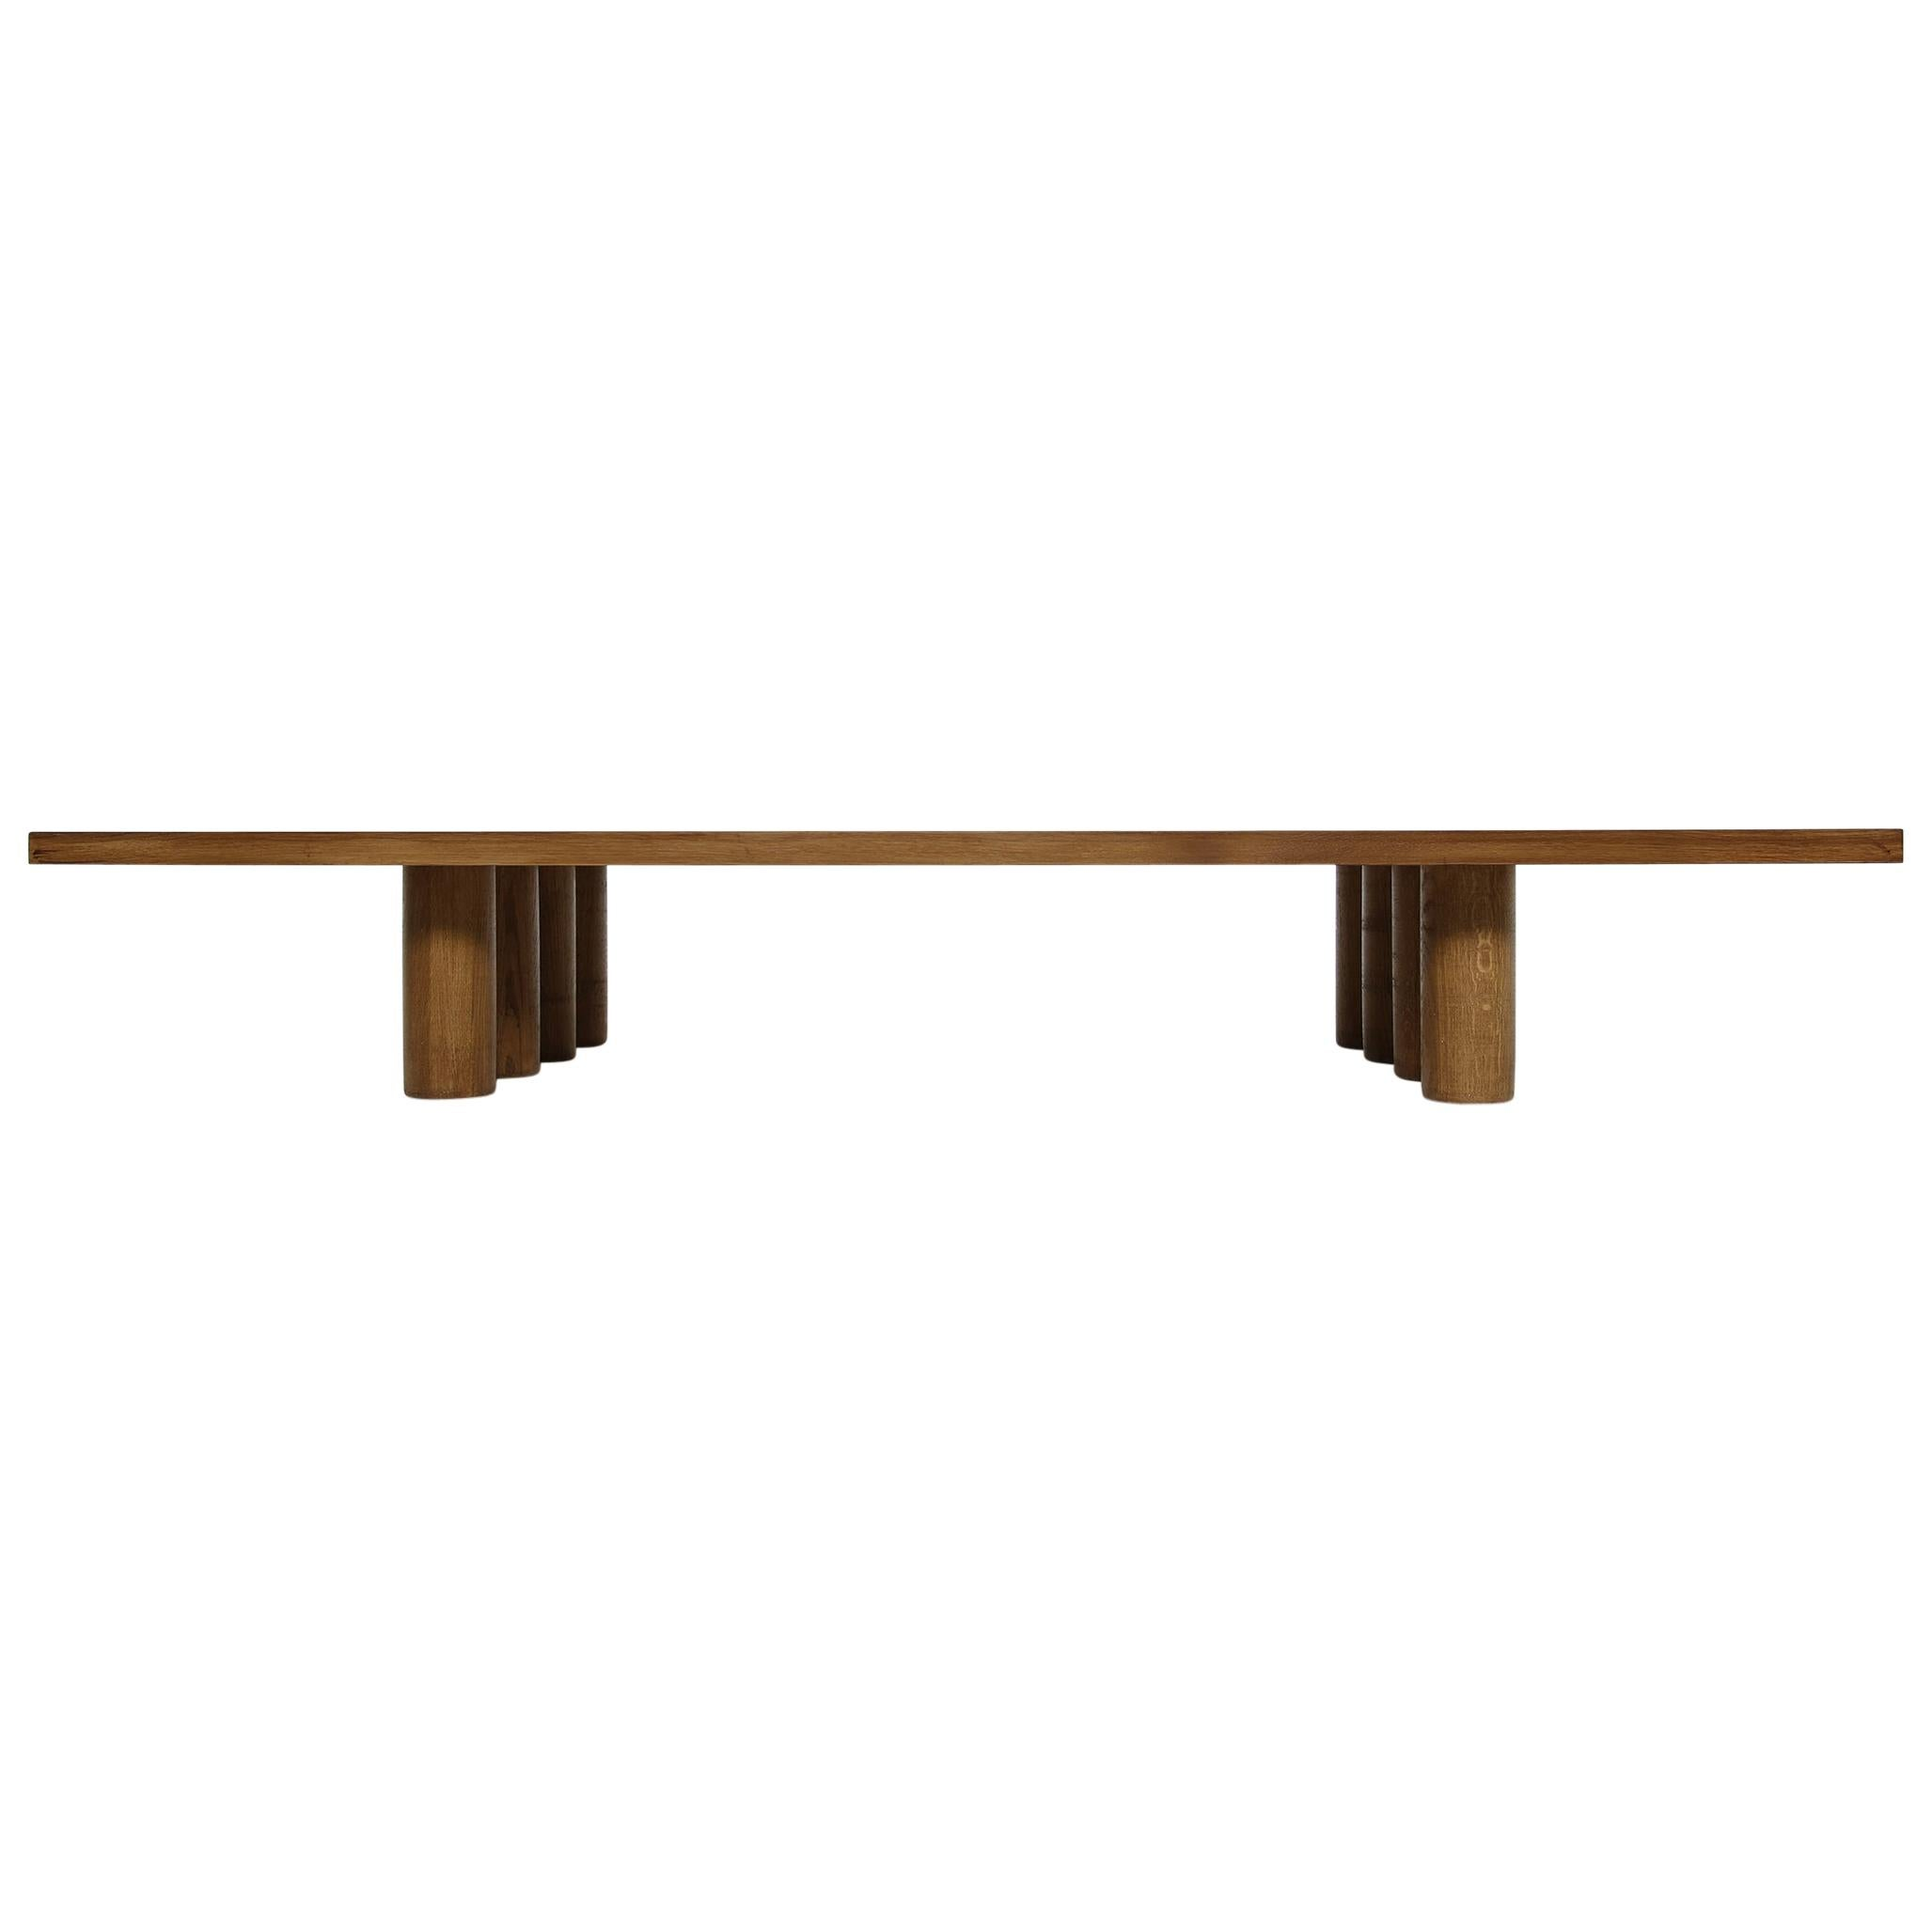 Modern Low Coffee Table Solid Oak, Nathan Lindberg Bench, Daybed, Pedestal E